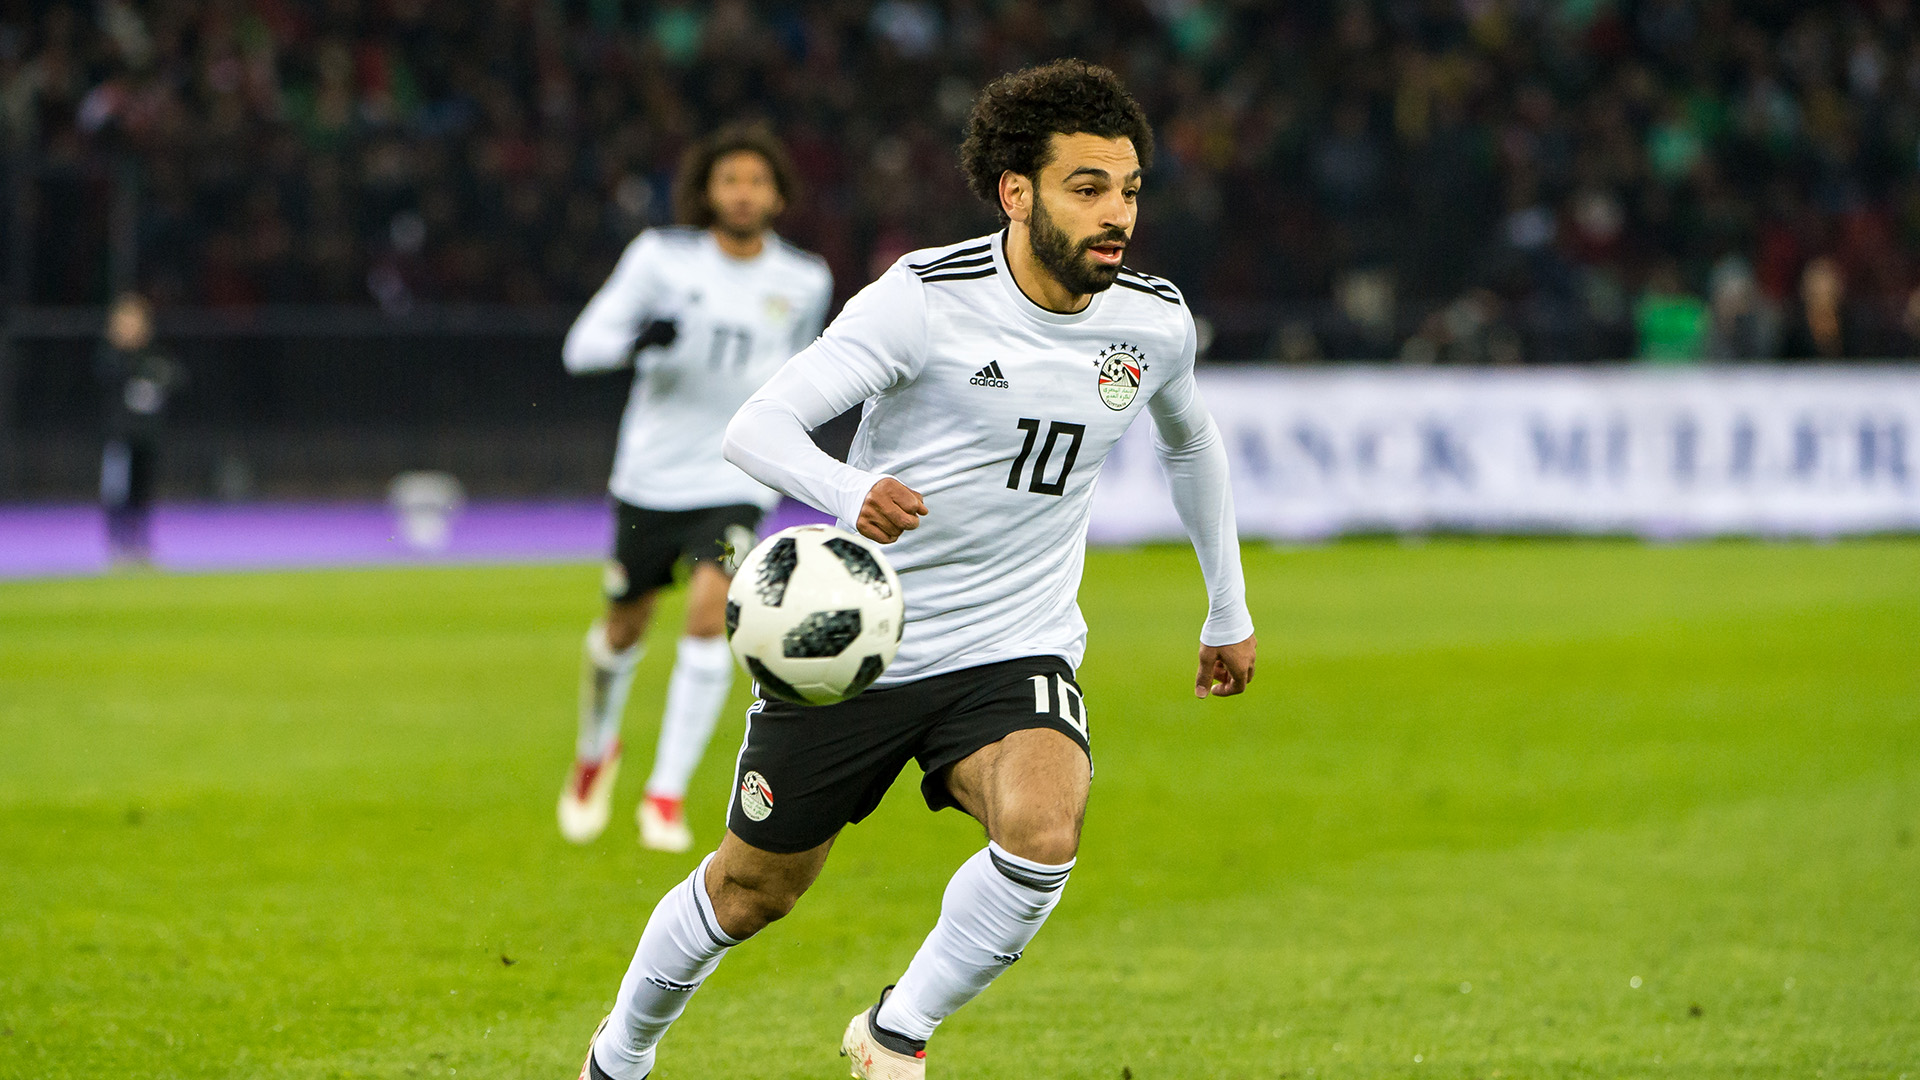 Mohamed Salah fit to play for Egypt against Uruguay